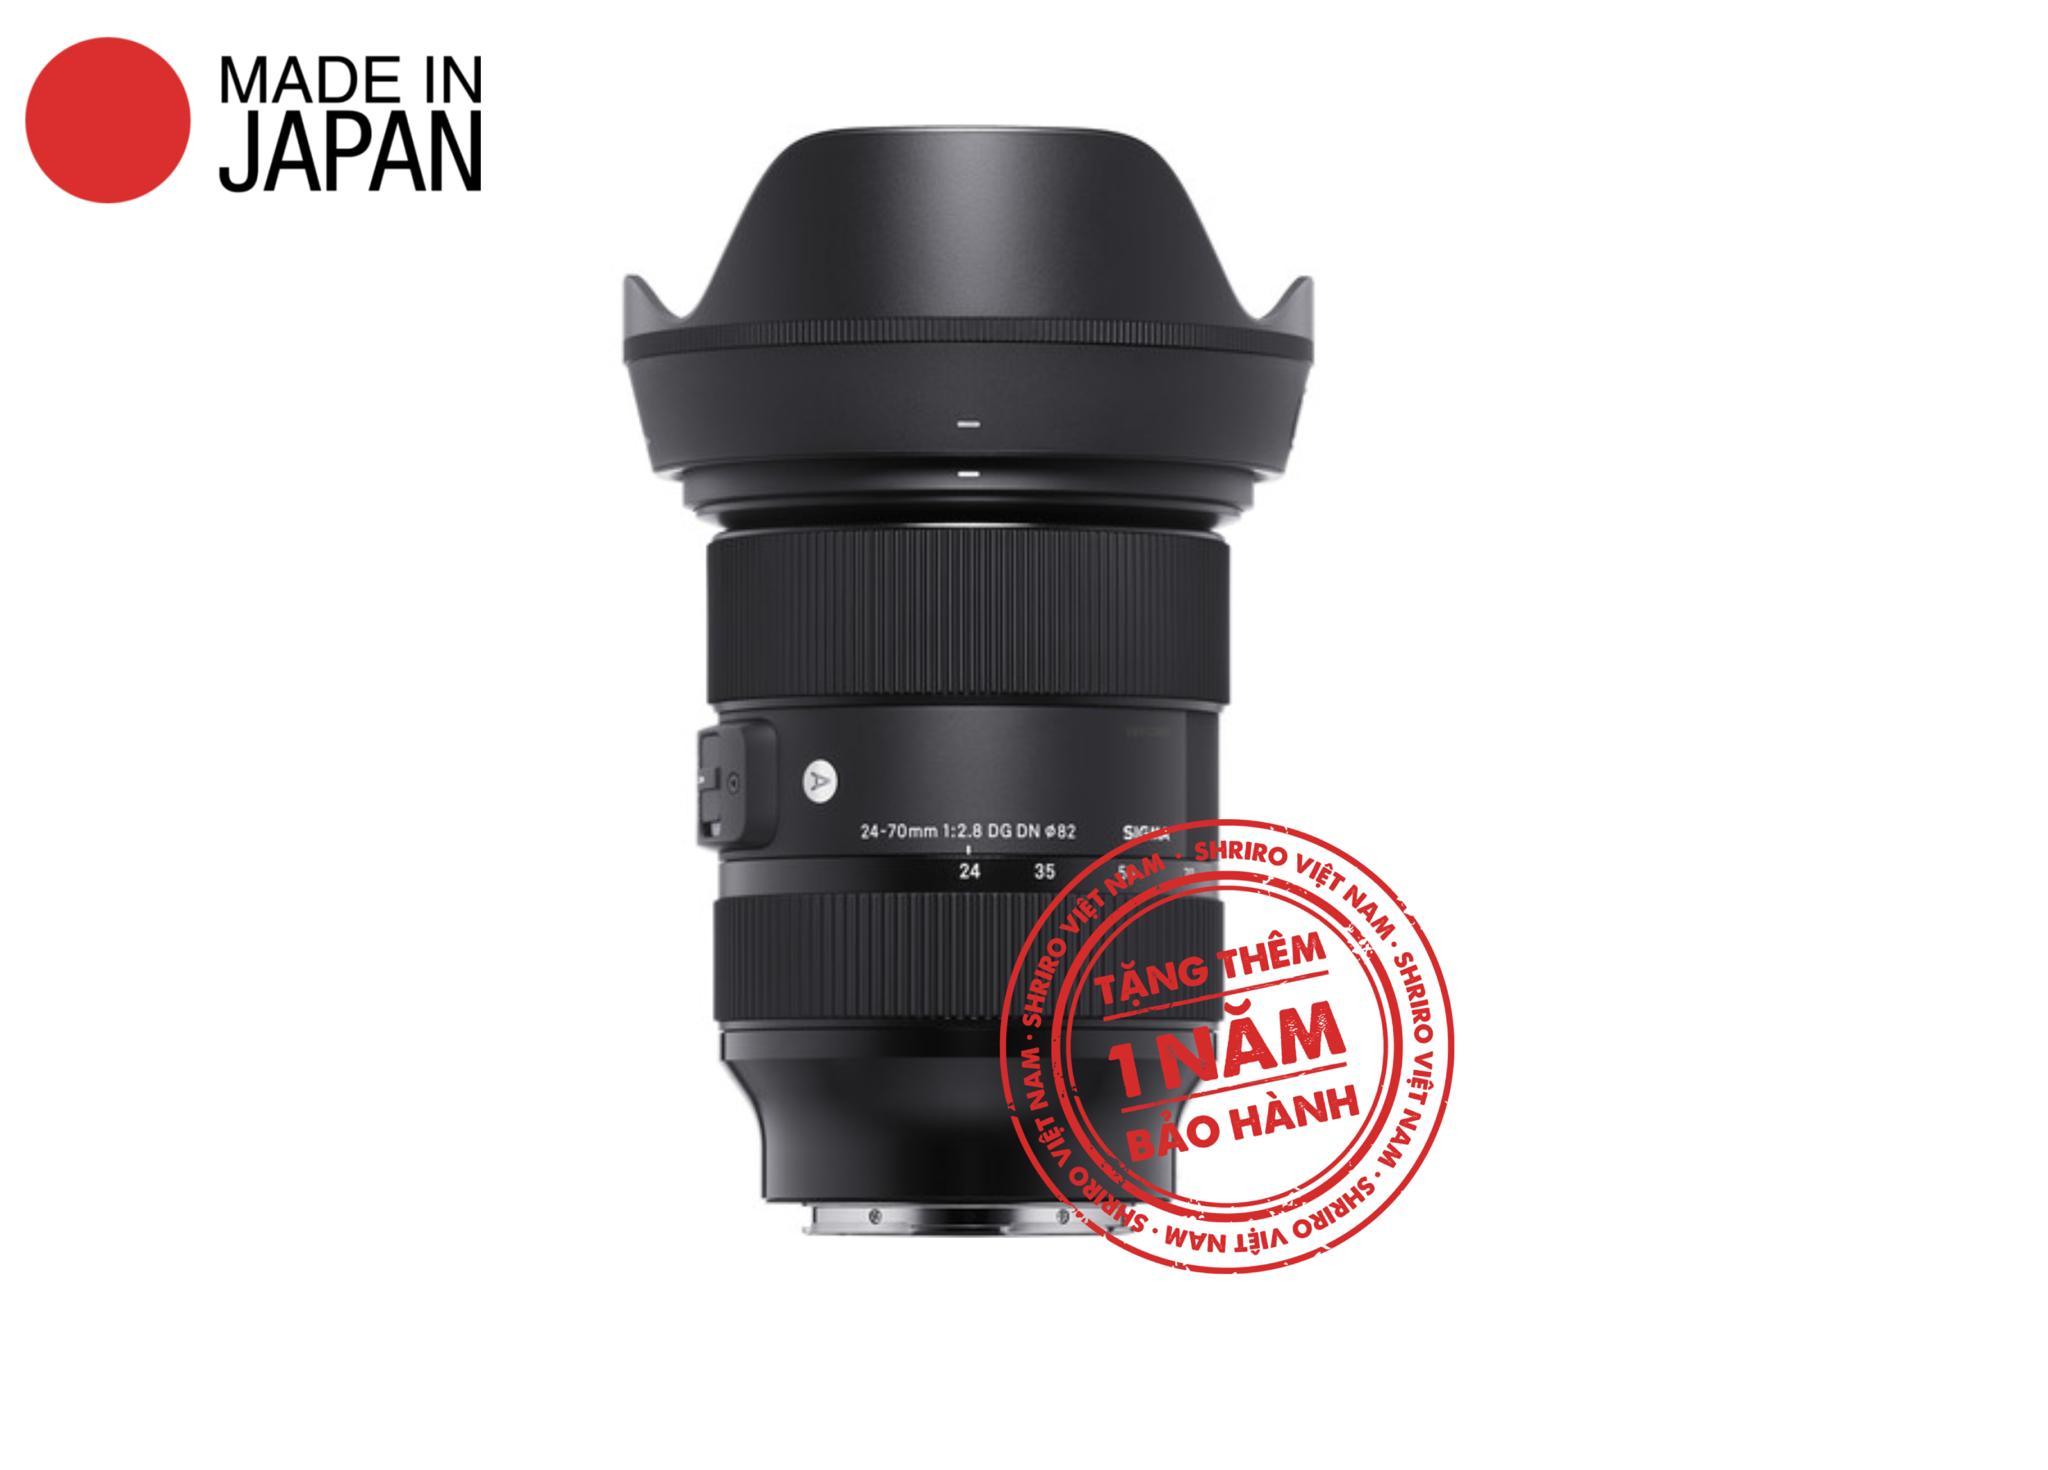 Sigma 24-70mm F2.8 DG DN (Art) (For Mirrorless)